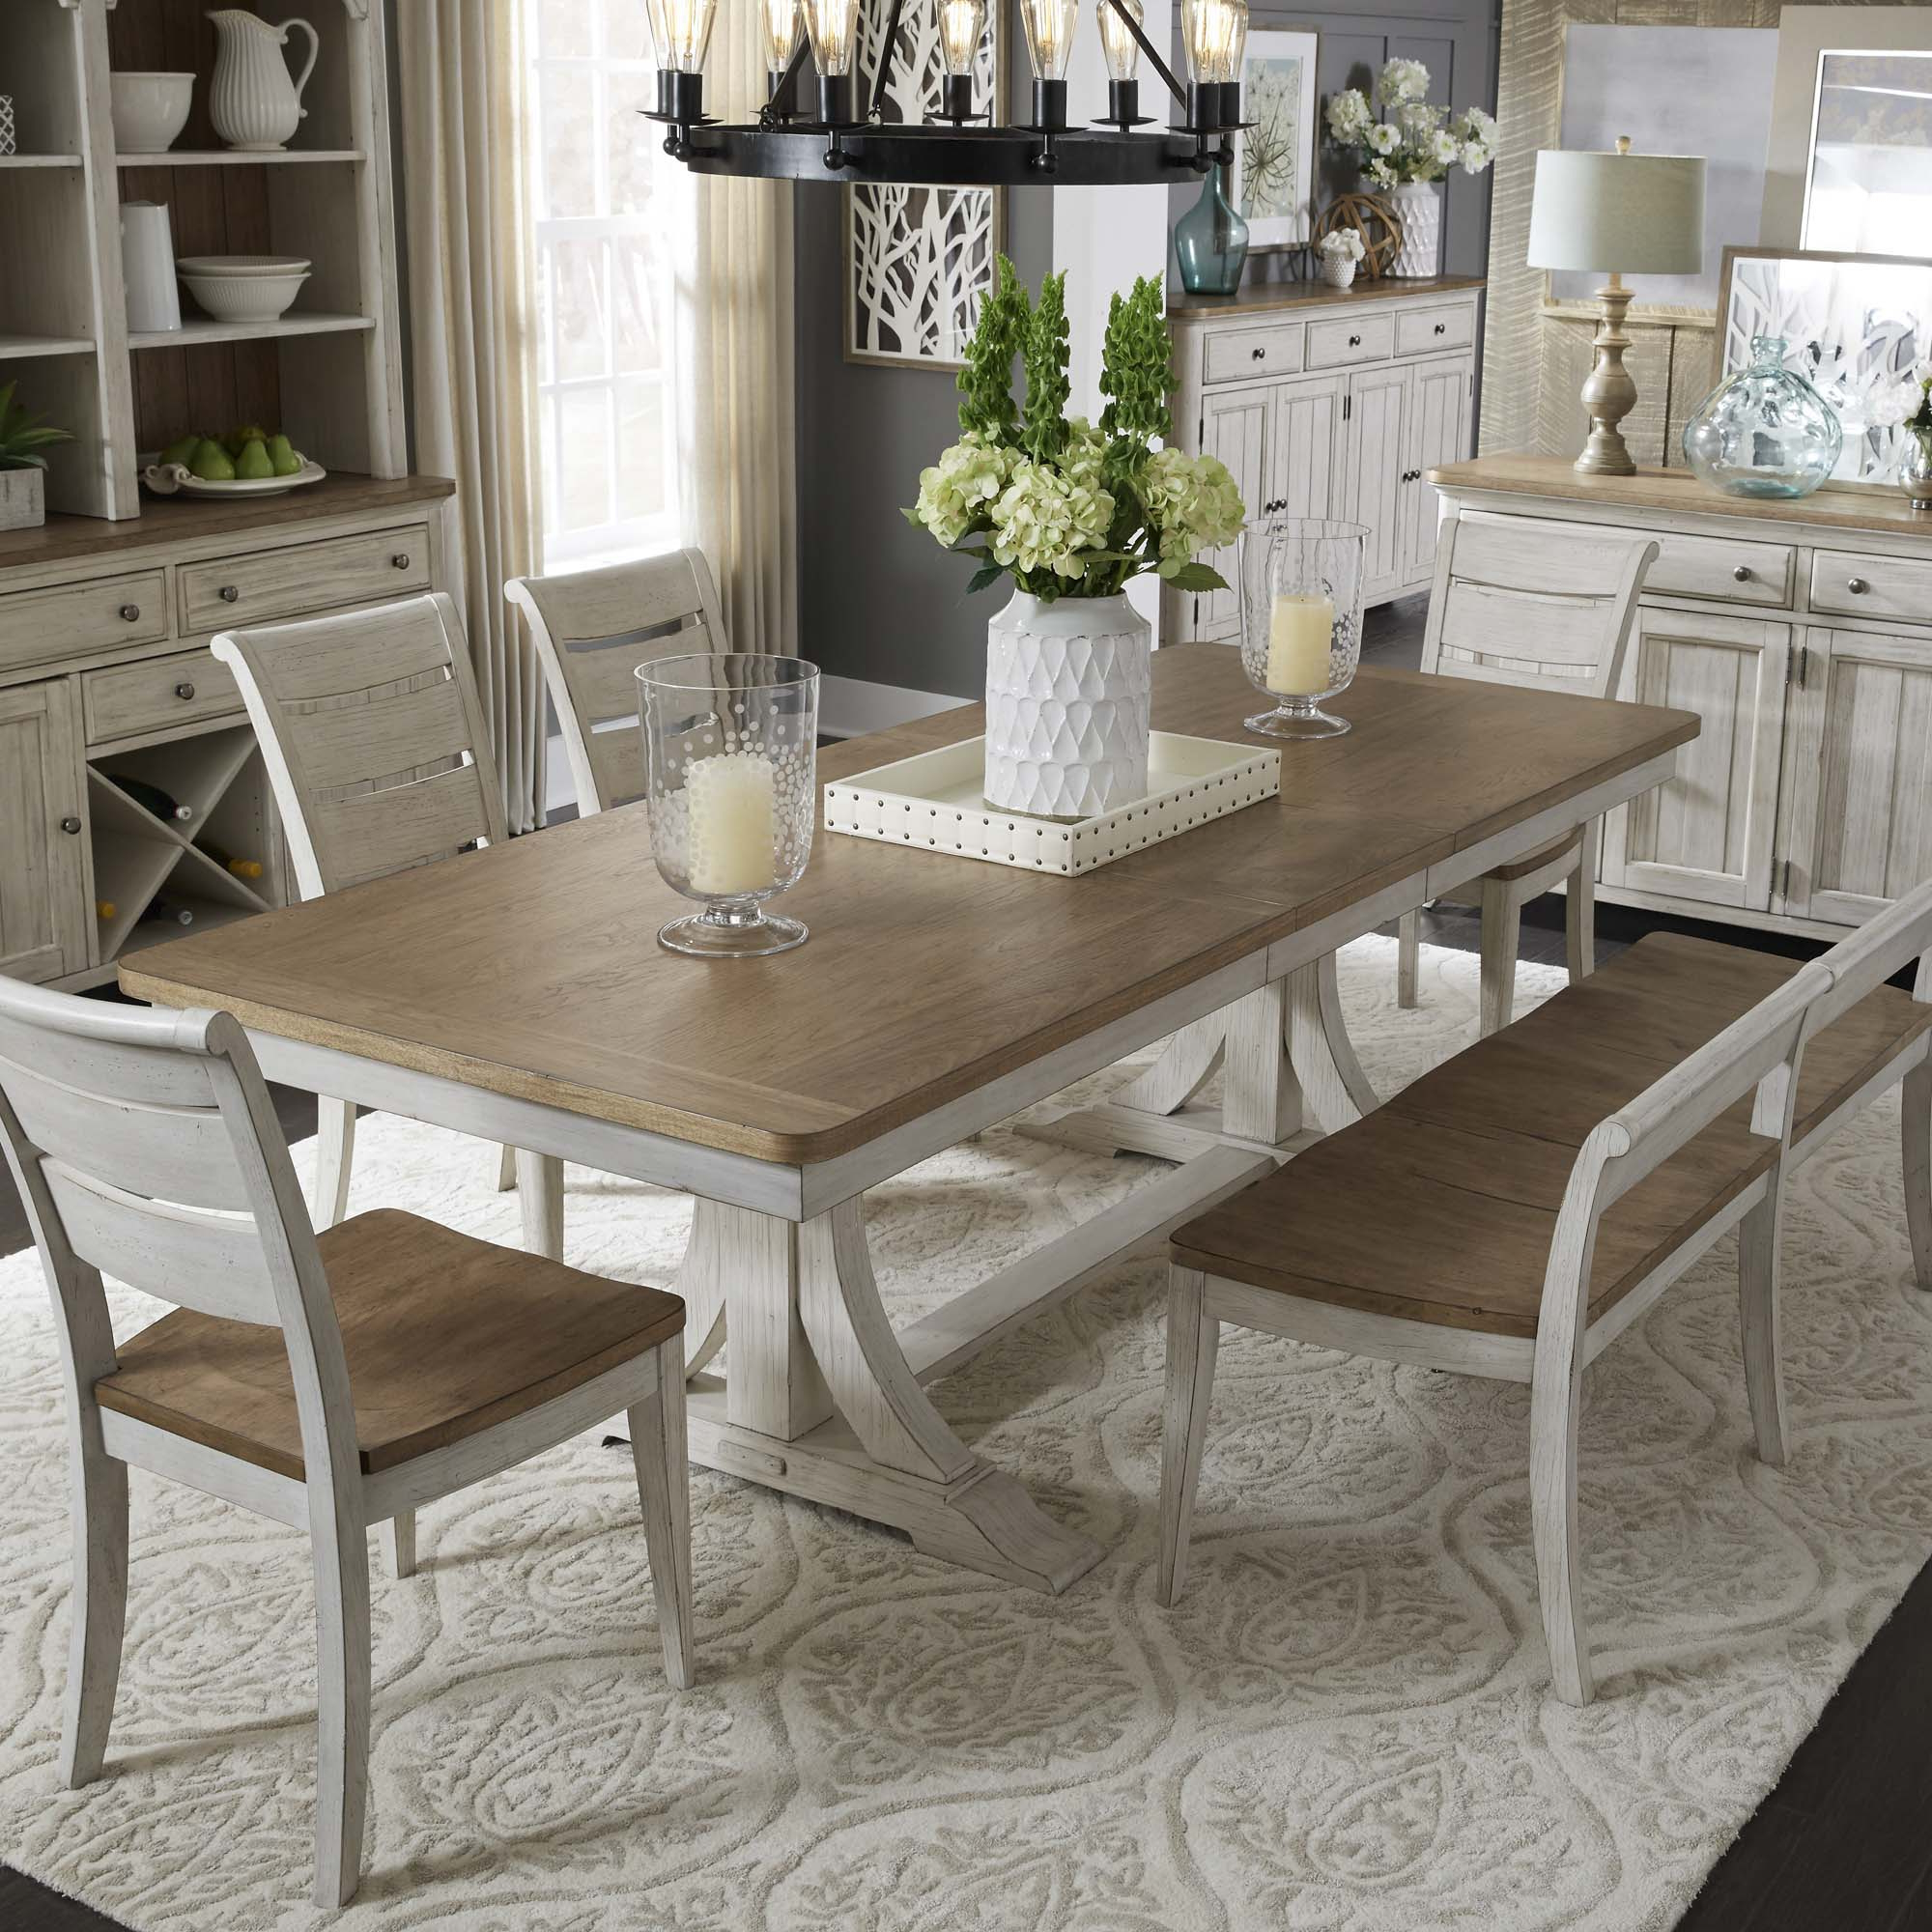 Fashionable Country Dining Tables With Weathered Pine Finish Inside Homepage Title (View 21 of 25)